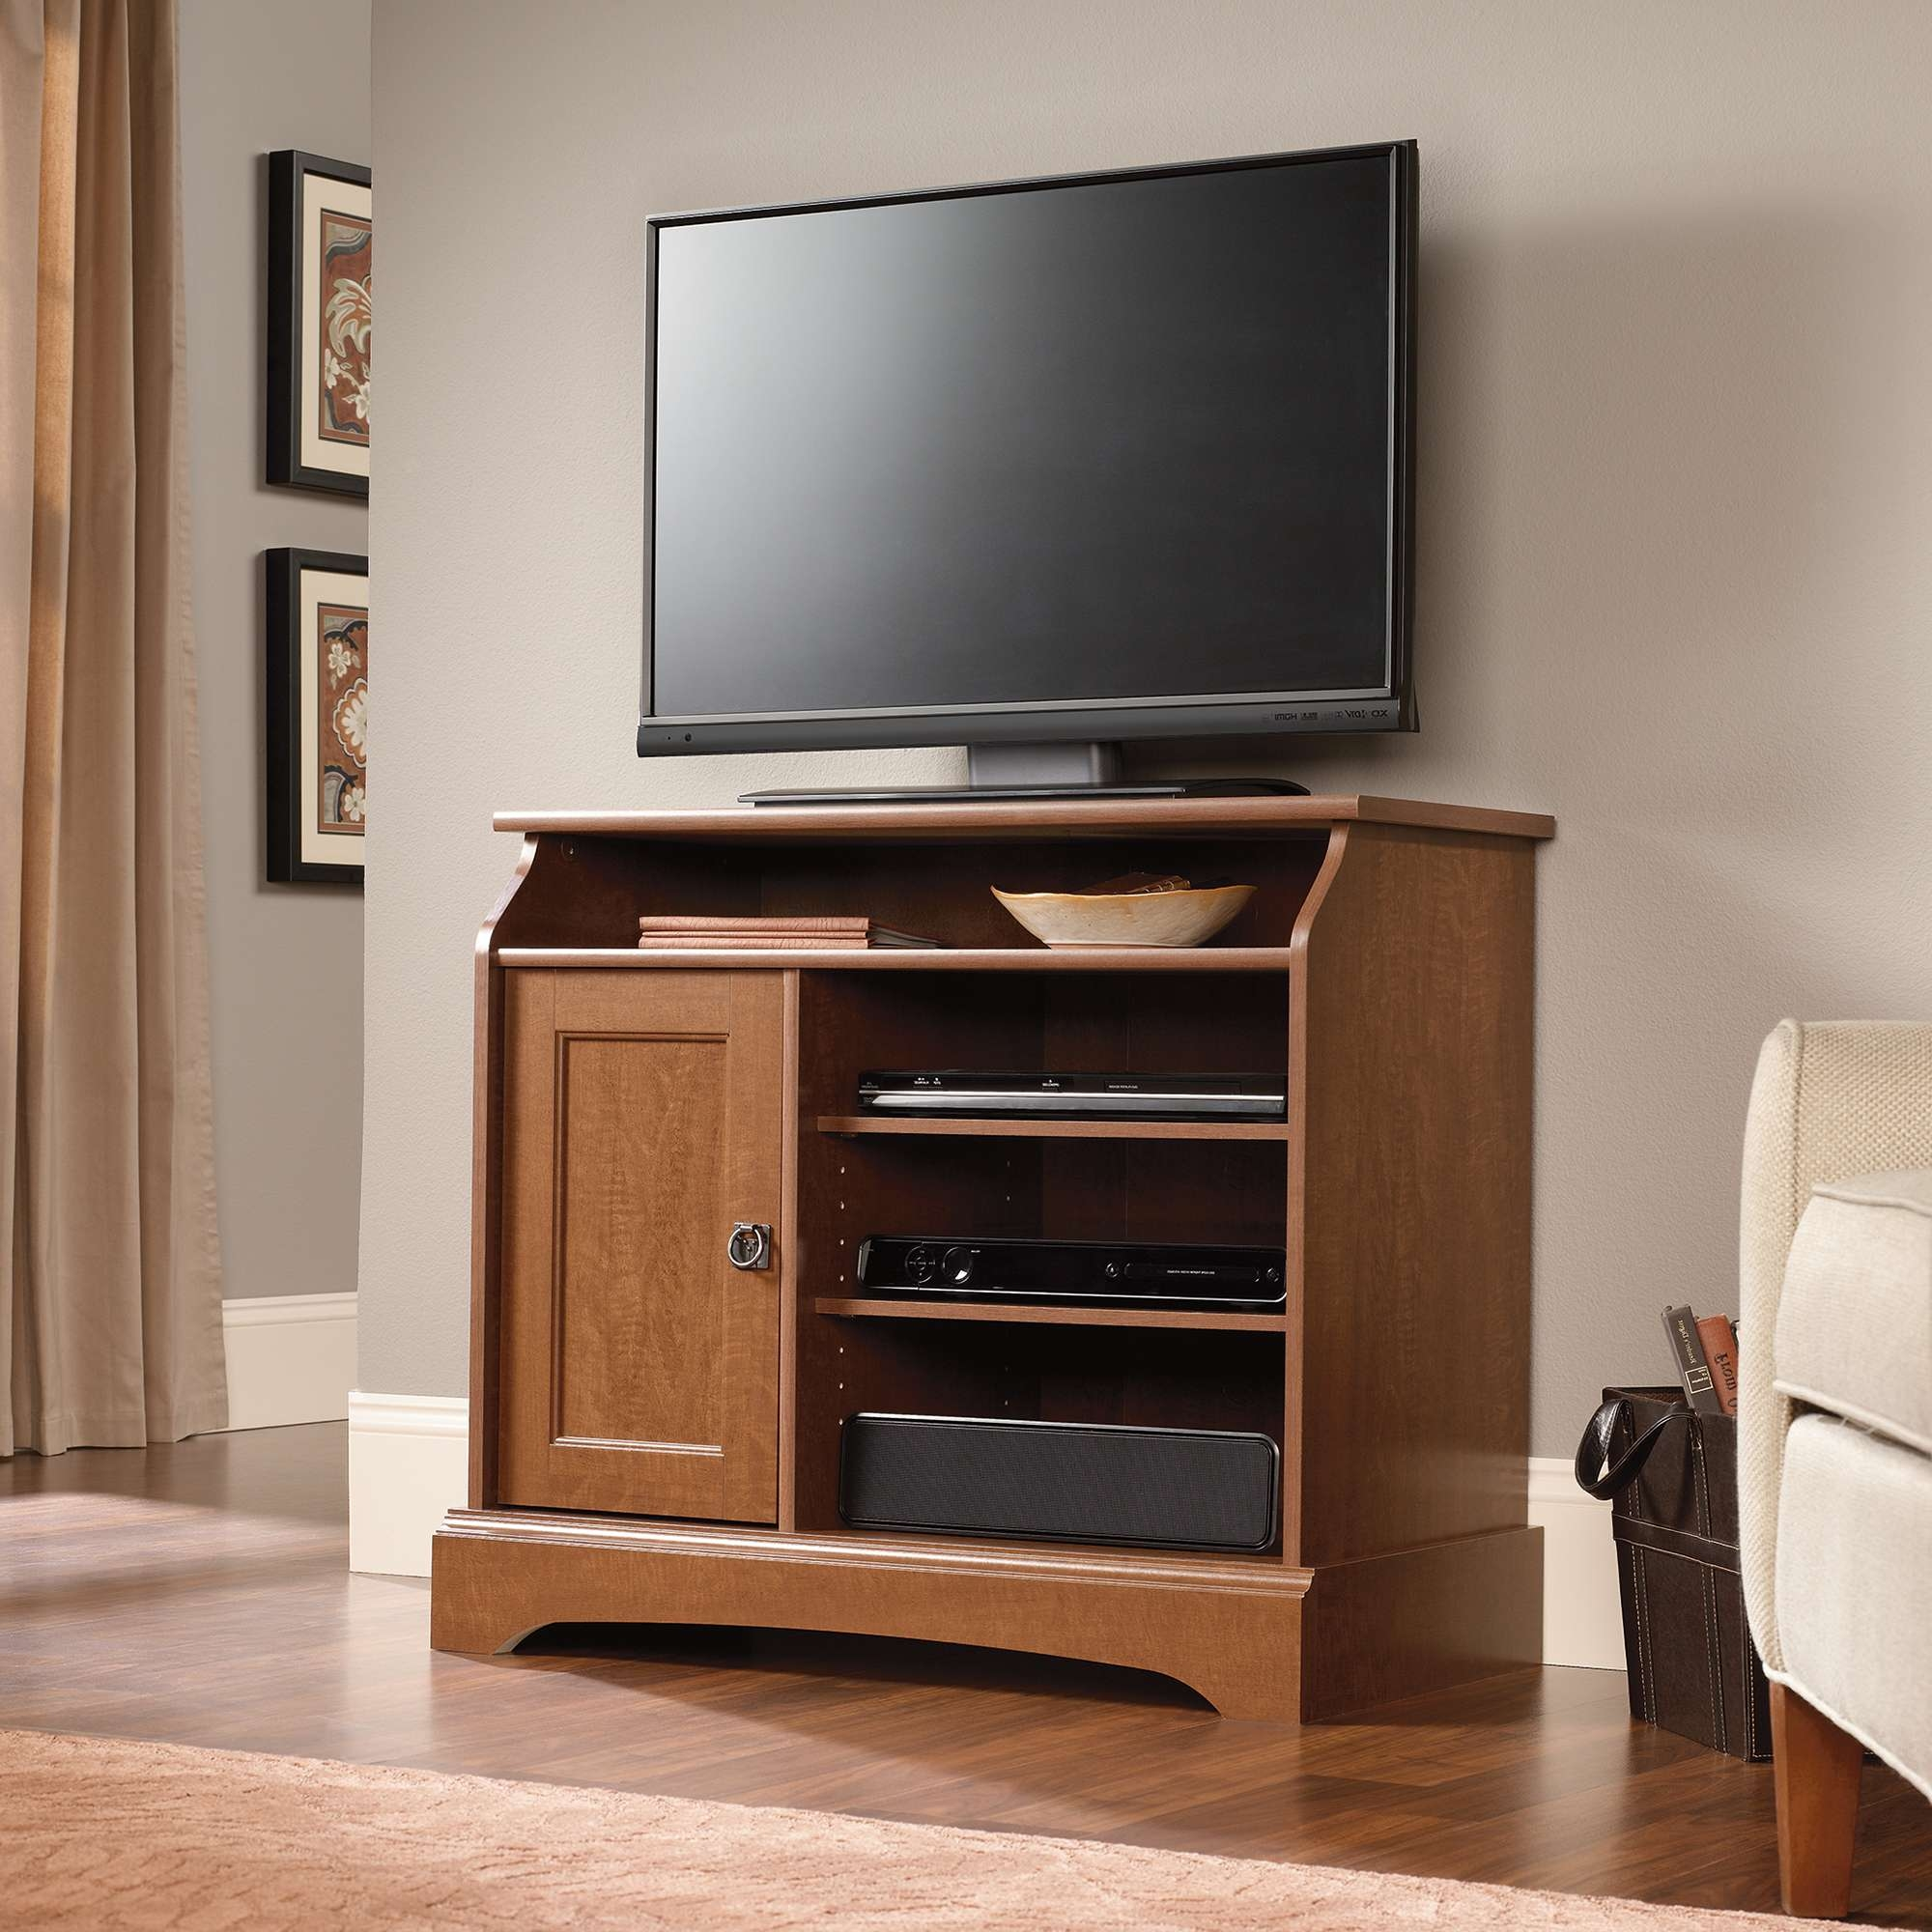 Sauder Select | Highboy Tv Stand | 408972 | Sauder With Regard To Maple Tv Cabinets (View 10 of 20)